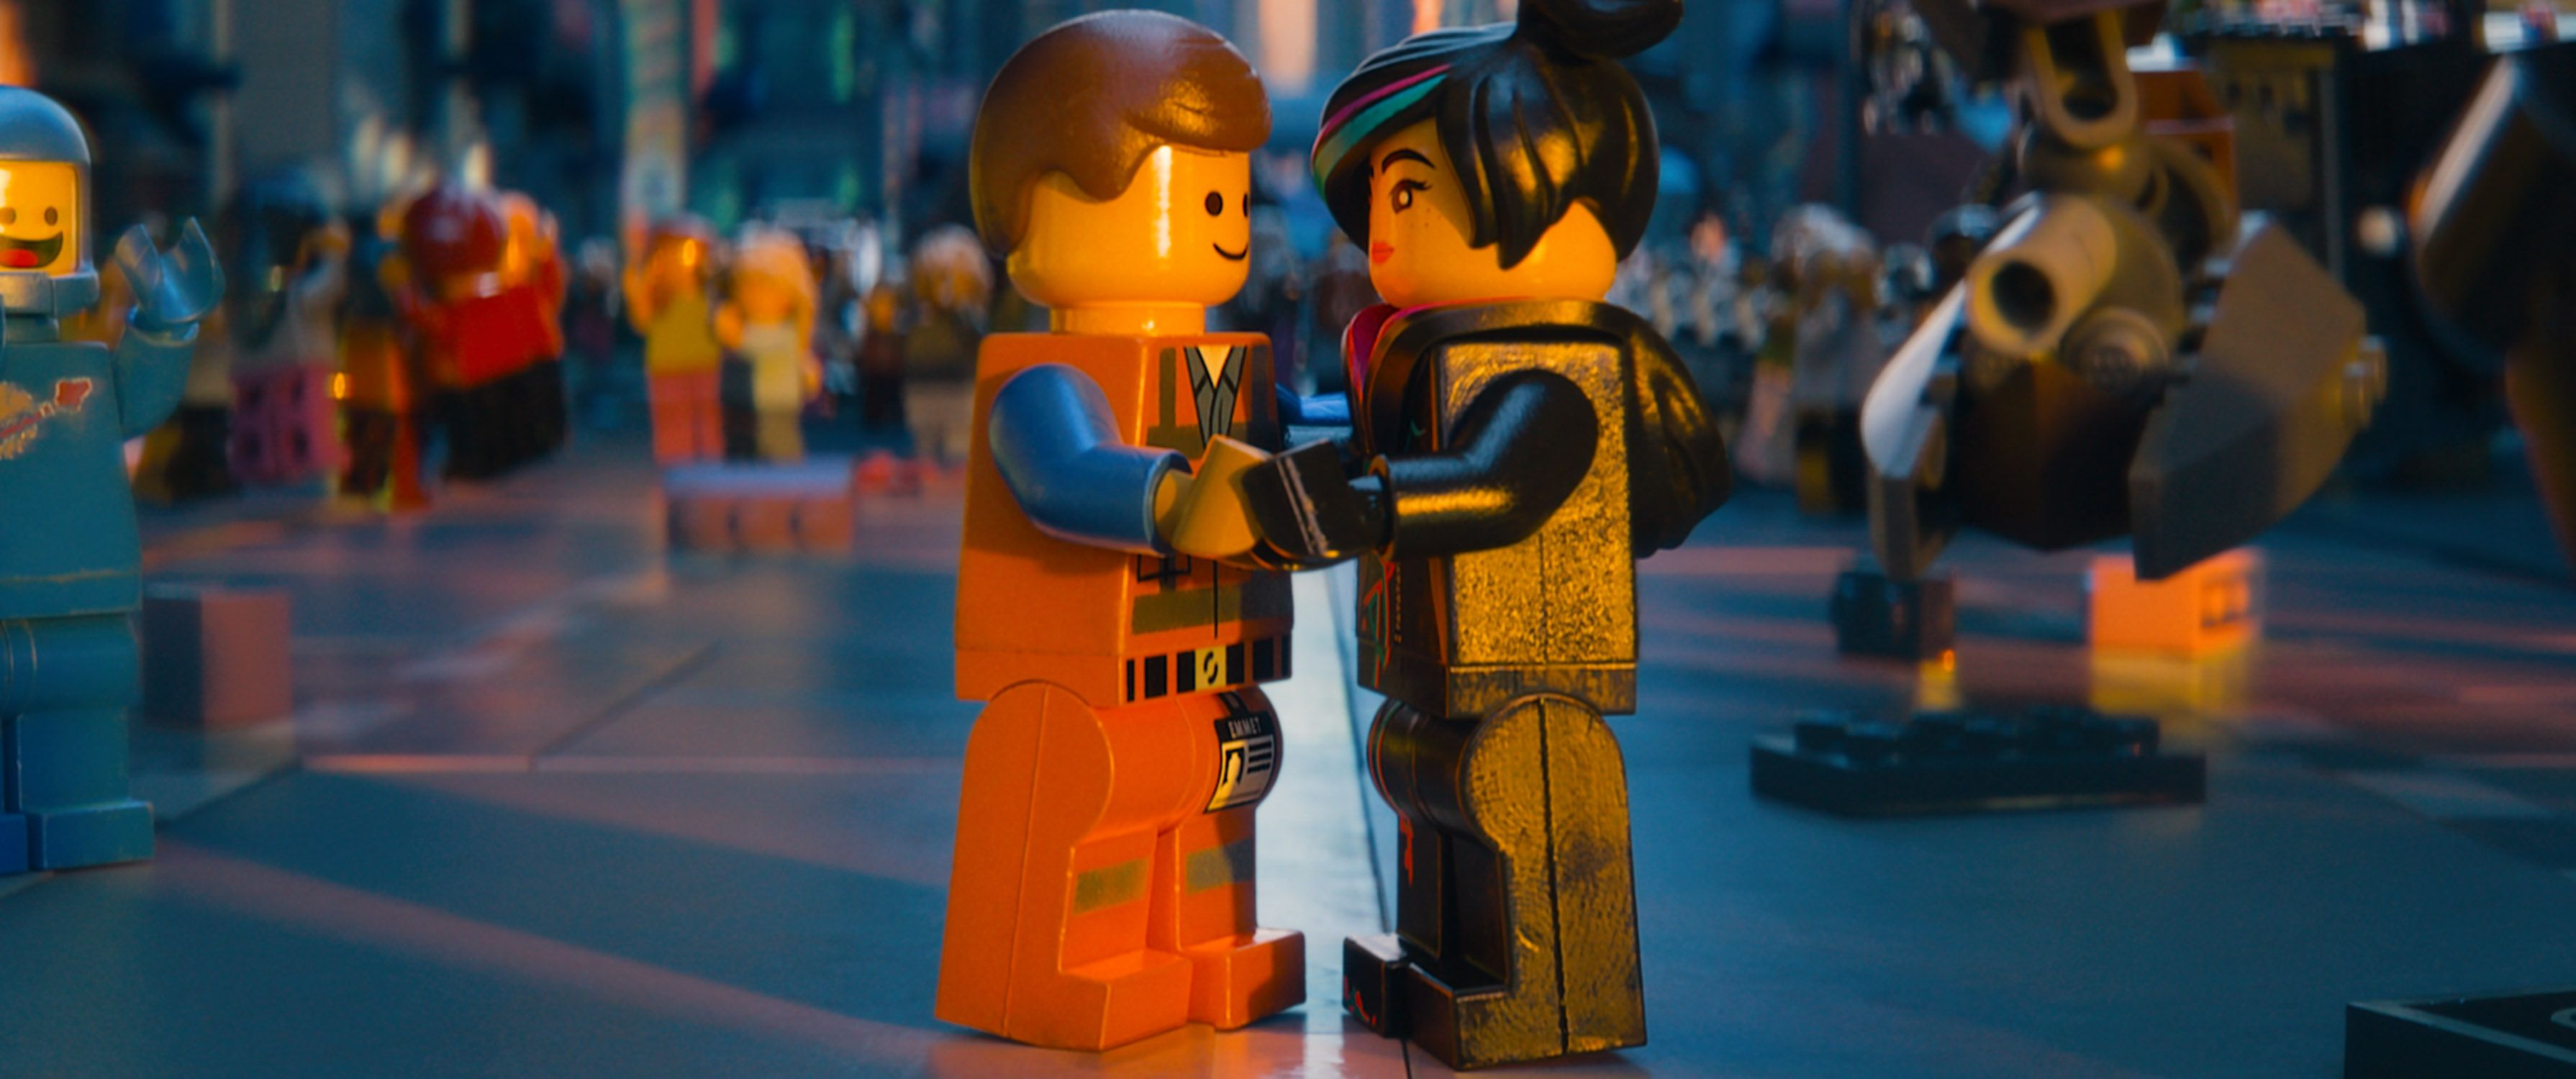 Pictures From The Lego Movie: Dan Lin Talks Lego Movie And Sequel, Sherlock Holmes 3, It